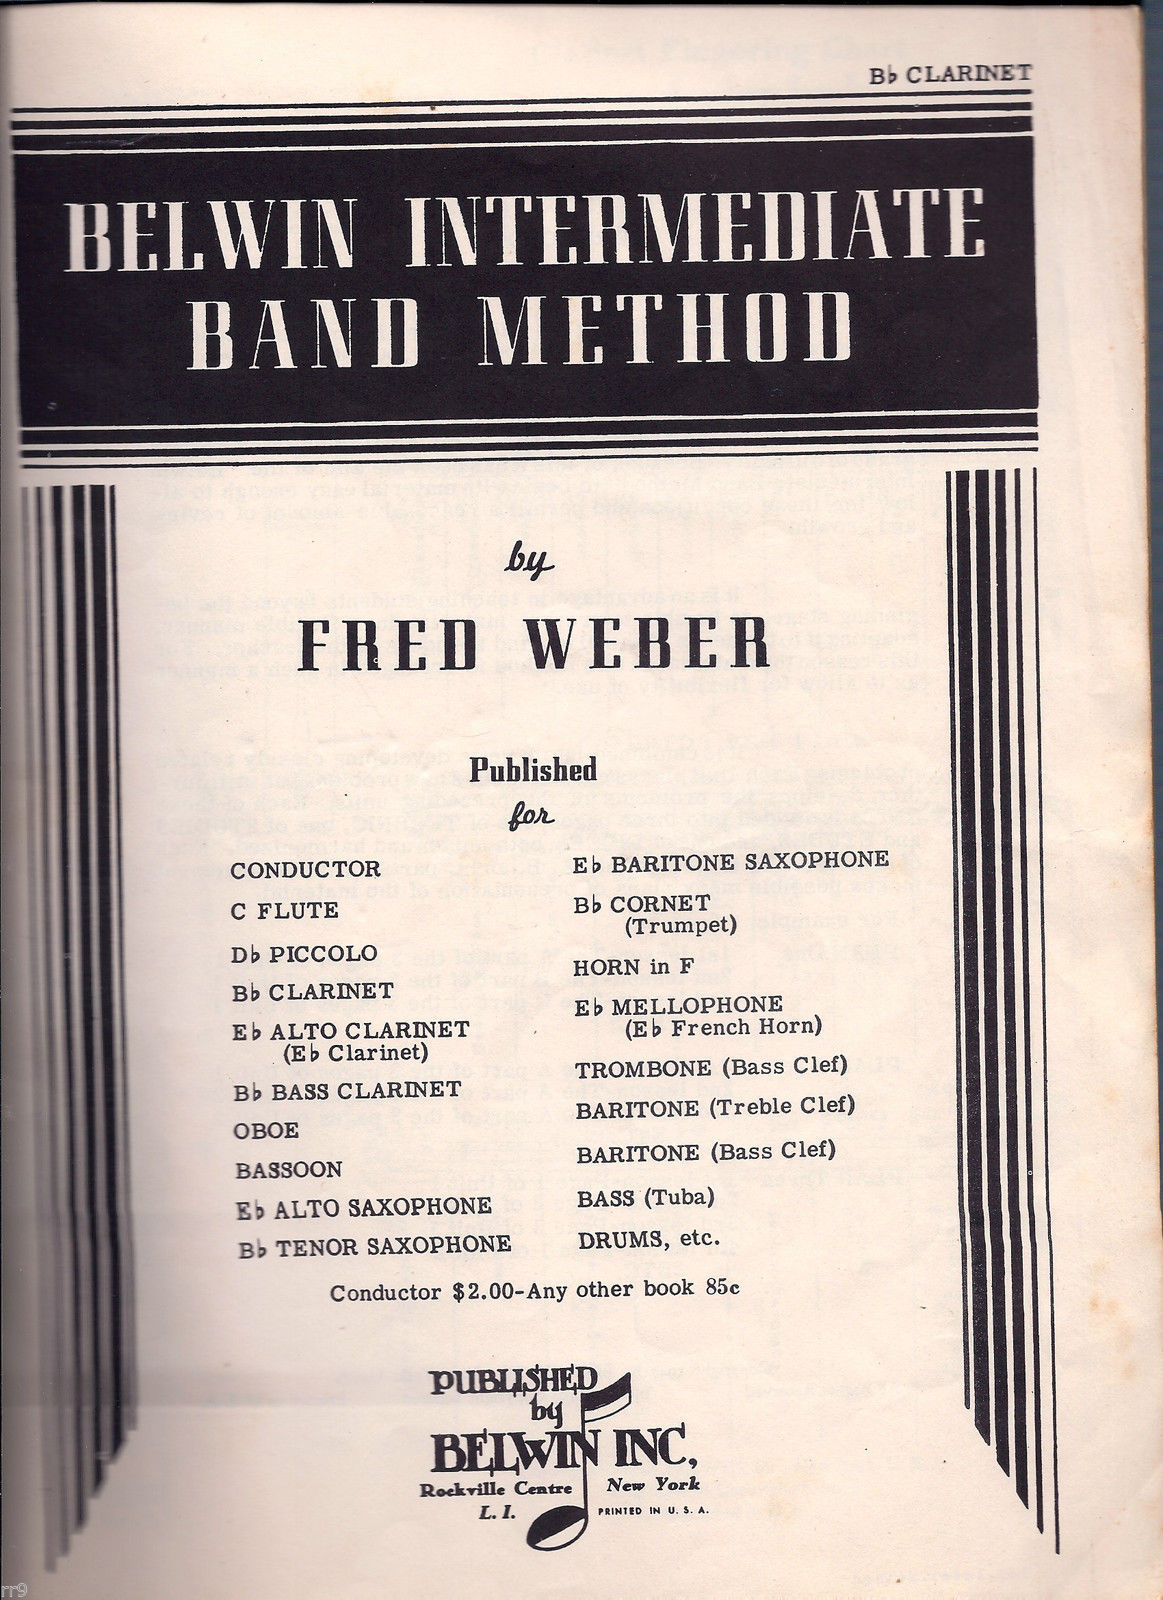 Belwin Intermediate Band Method Song Book for Class or Full Band Instruction